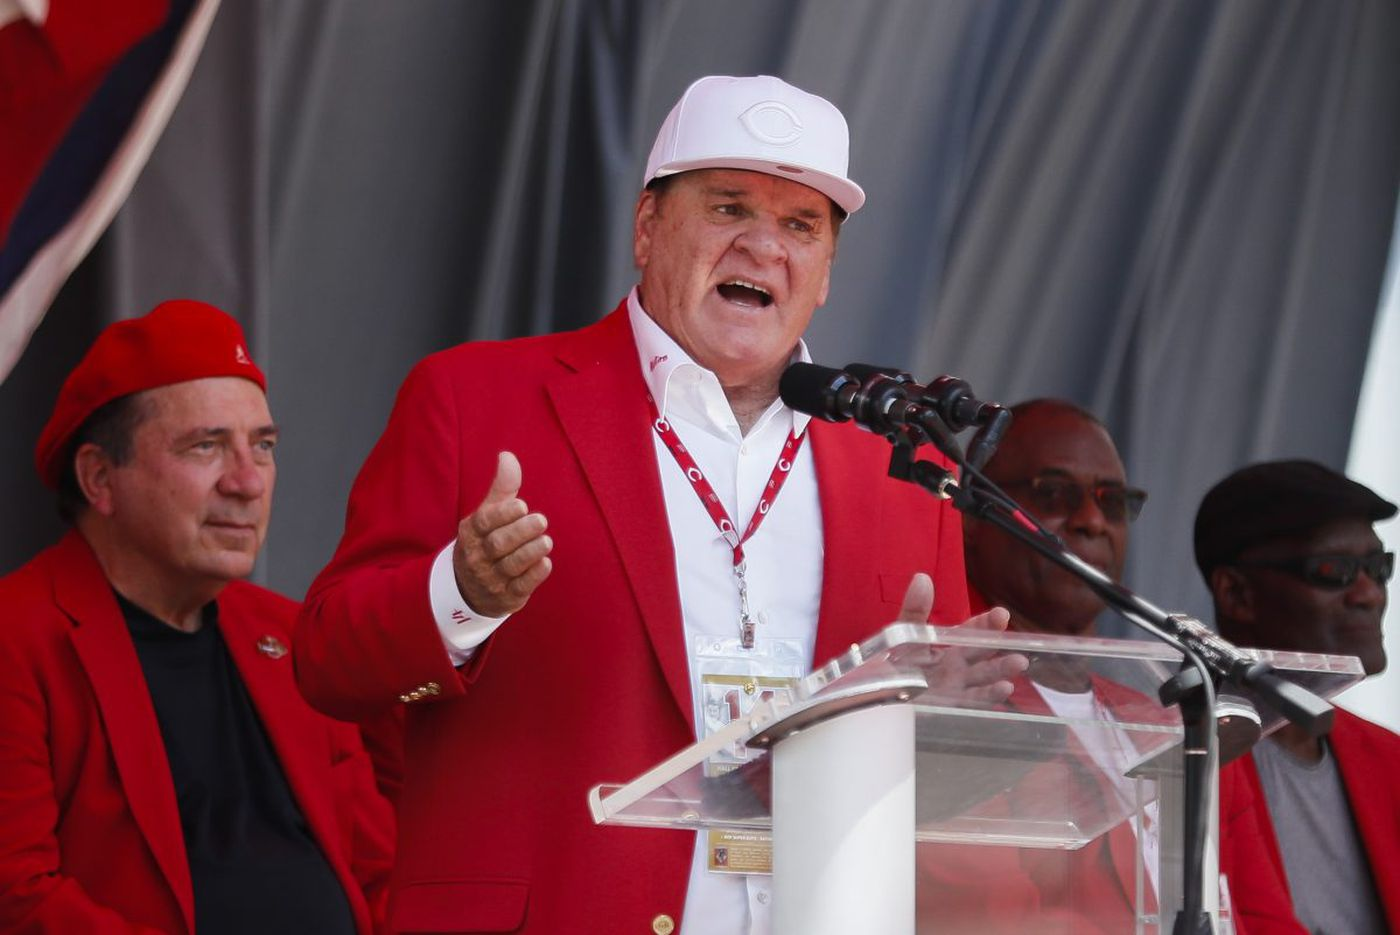 Pete Rose, prospective Phillies Wall of Fame inductee, accused of having sex with underage girl